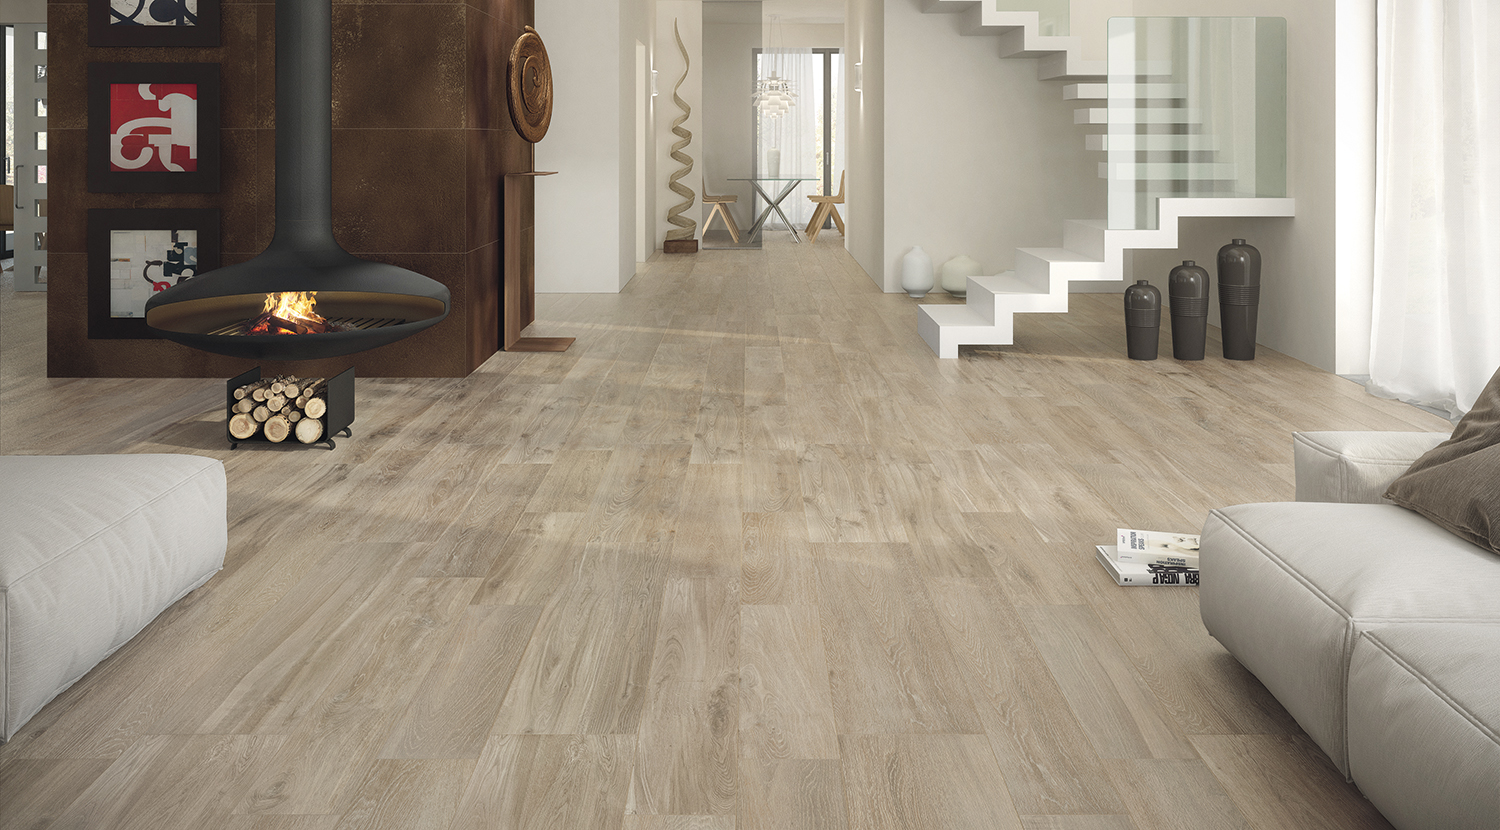 Wood Effect Tiles Ct Almond